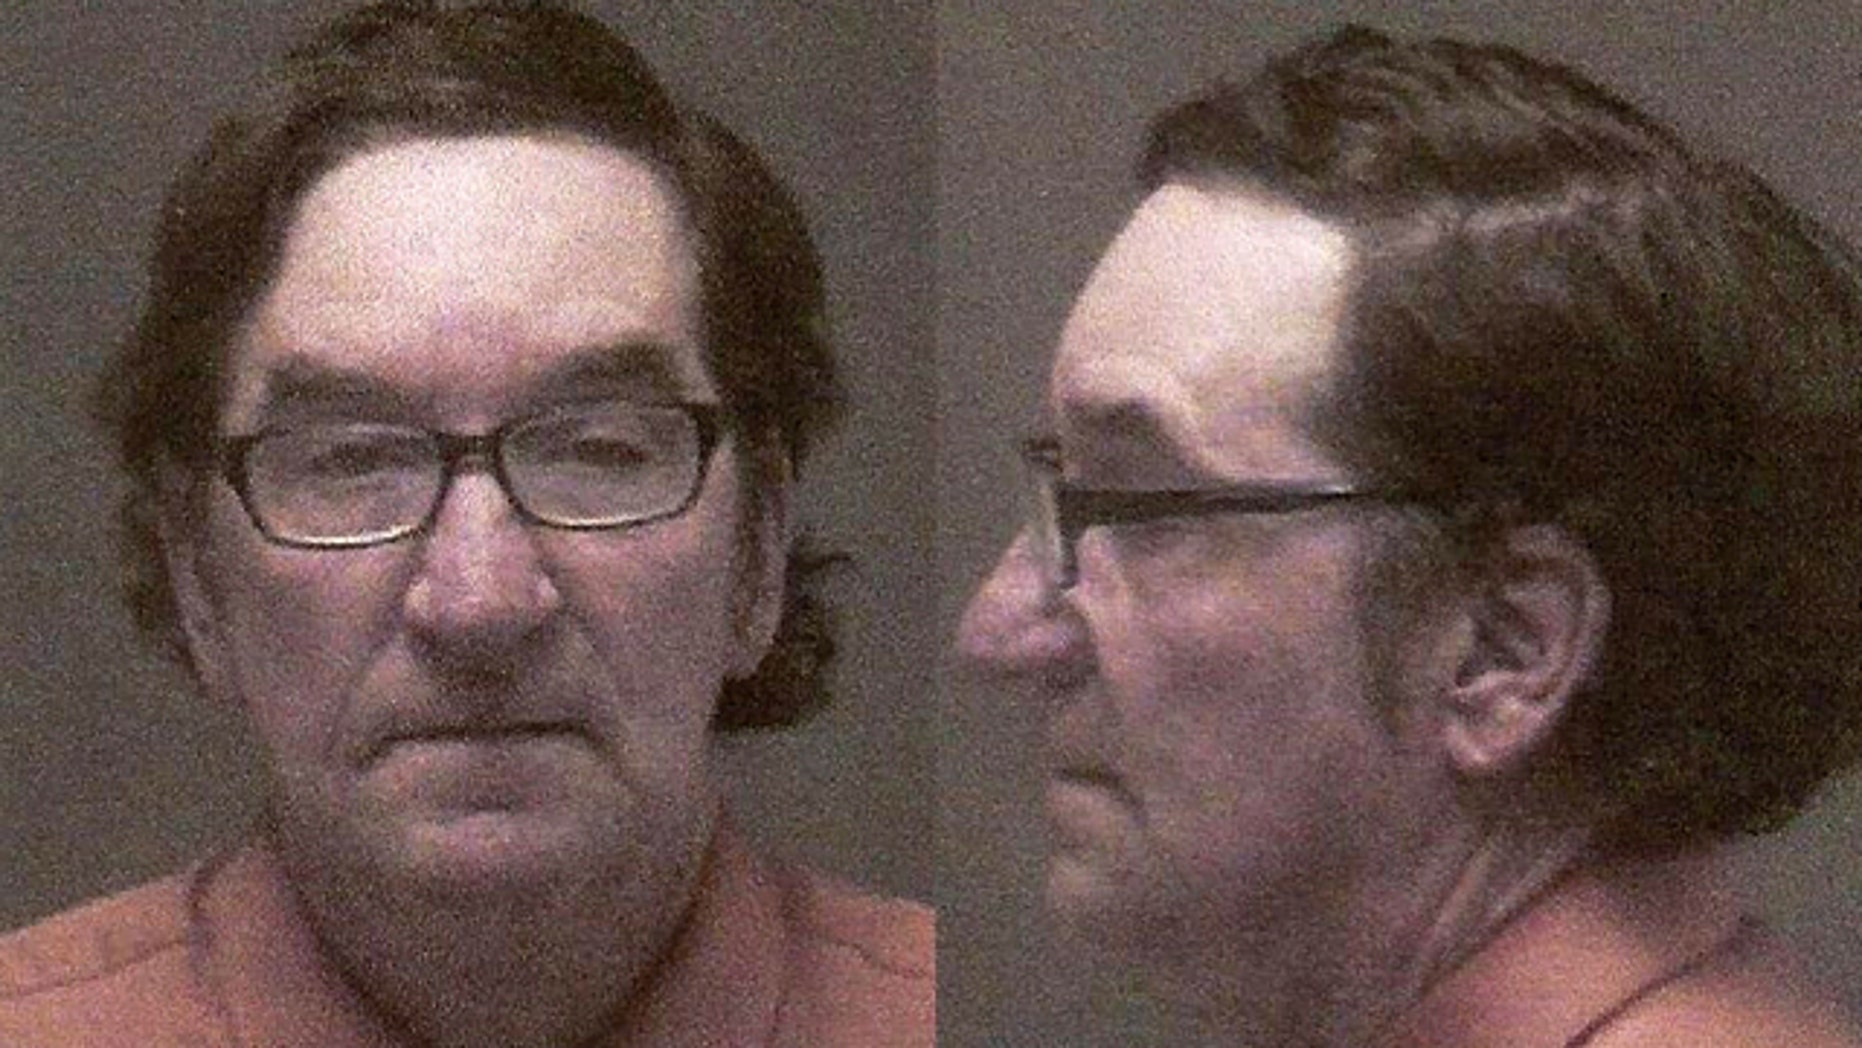 Nov. 1, 2012: This booking photo provided by the Isabella County Sheriff's Department shows John D. White, who was arraigned on first-degree murder charges and ordered jailed without bond. (AP/Isabella County Sheriff's Department)